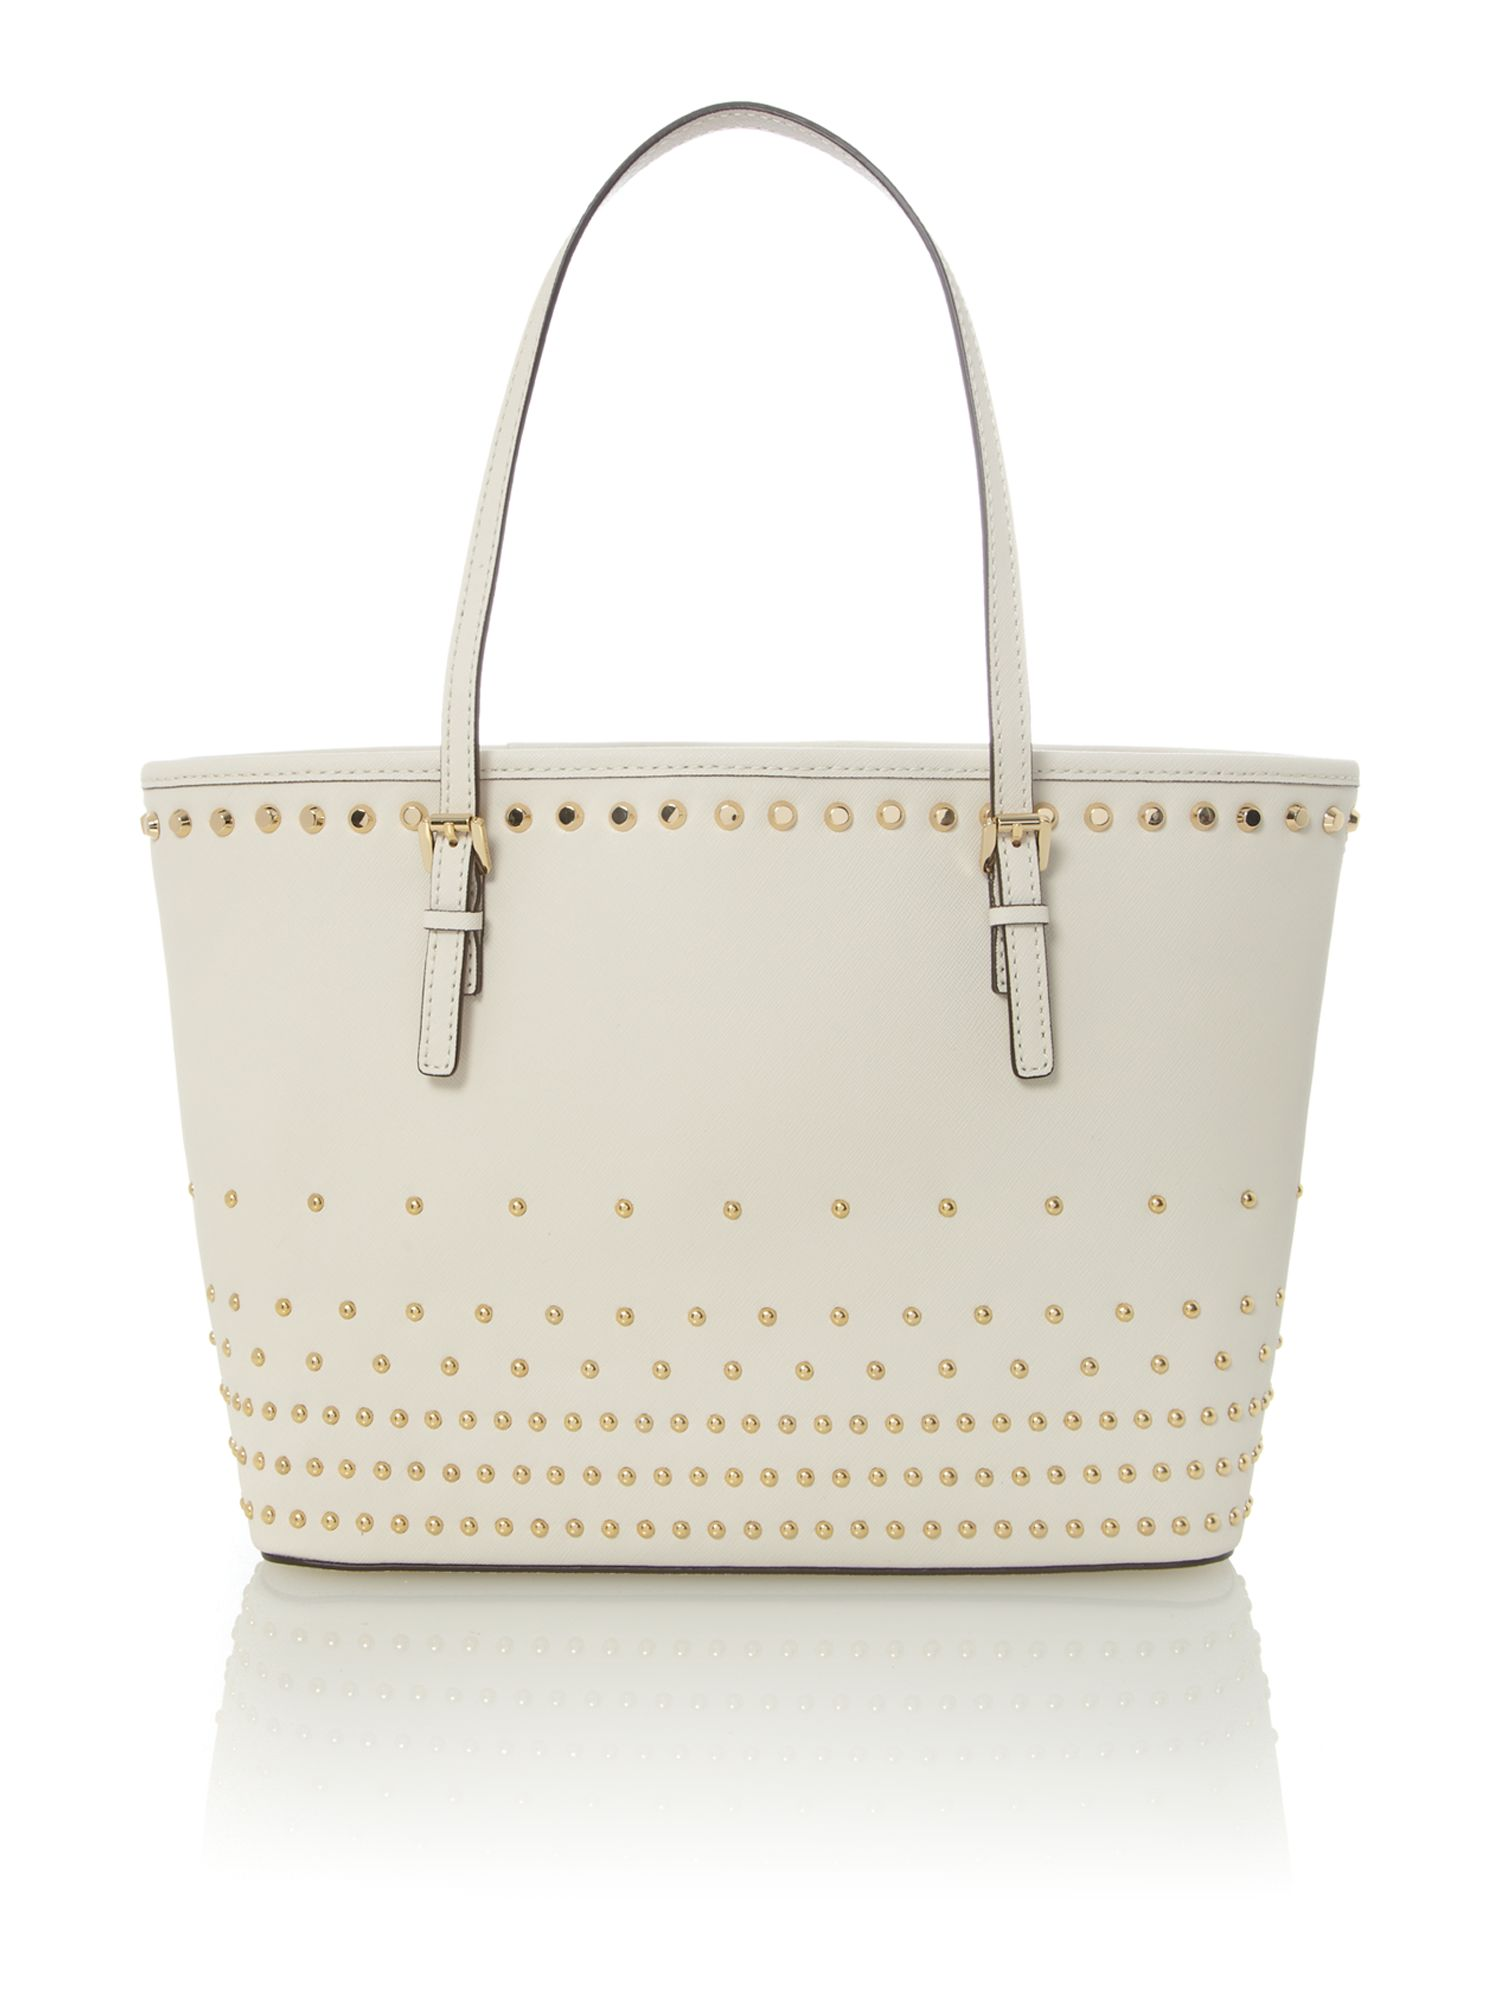 Jet set travel natural stud tote bag